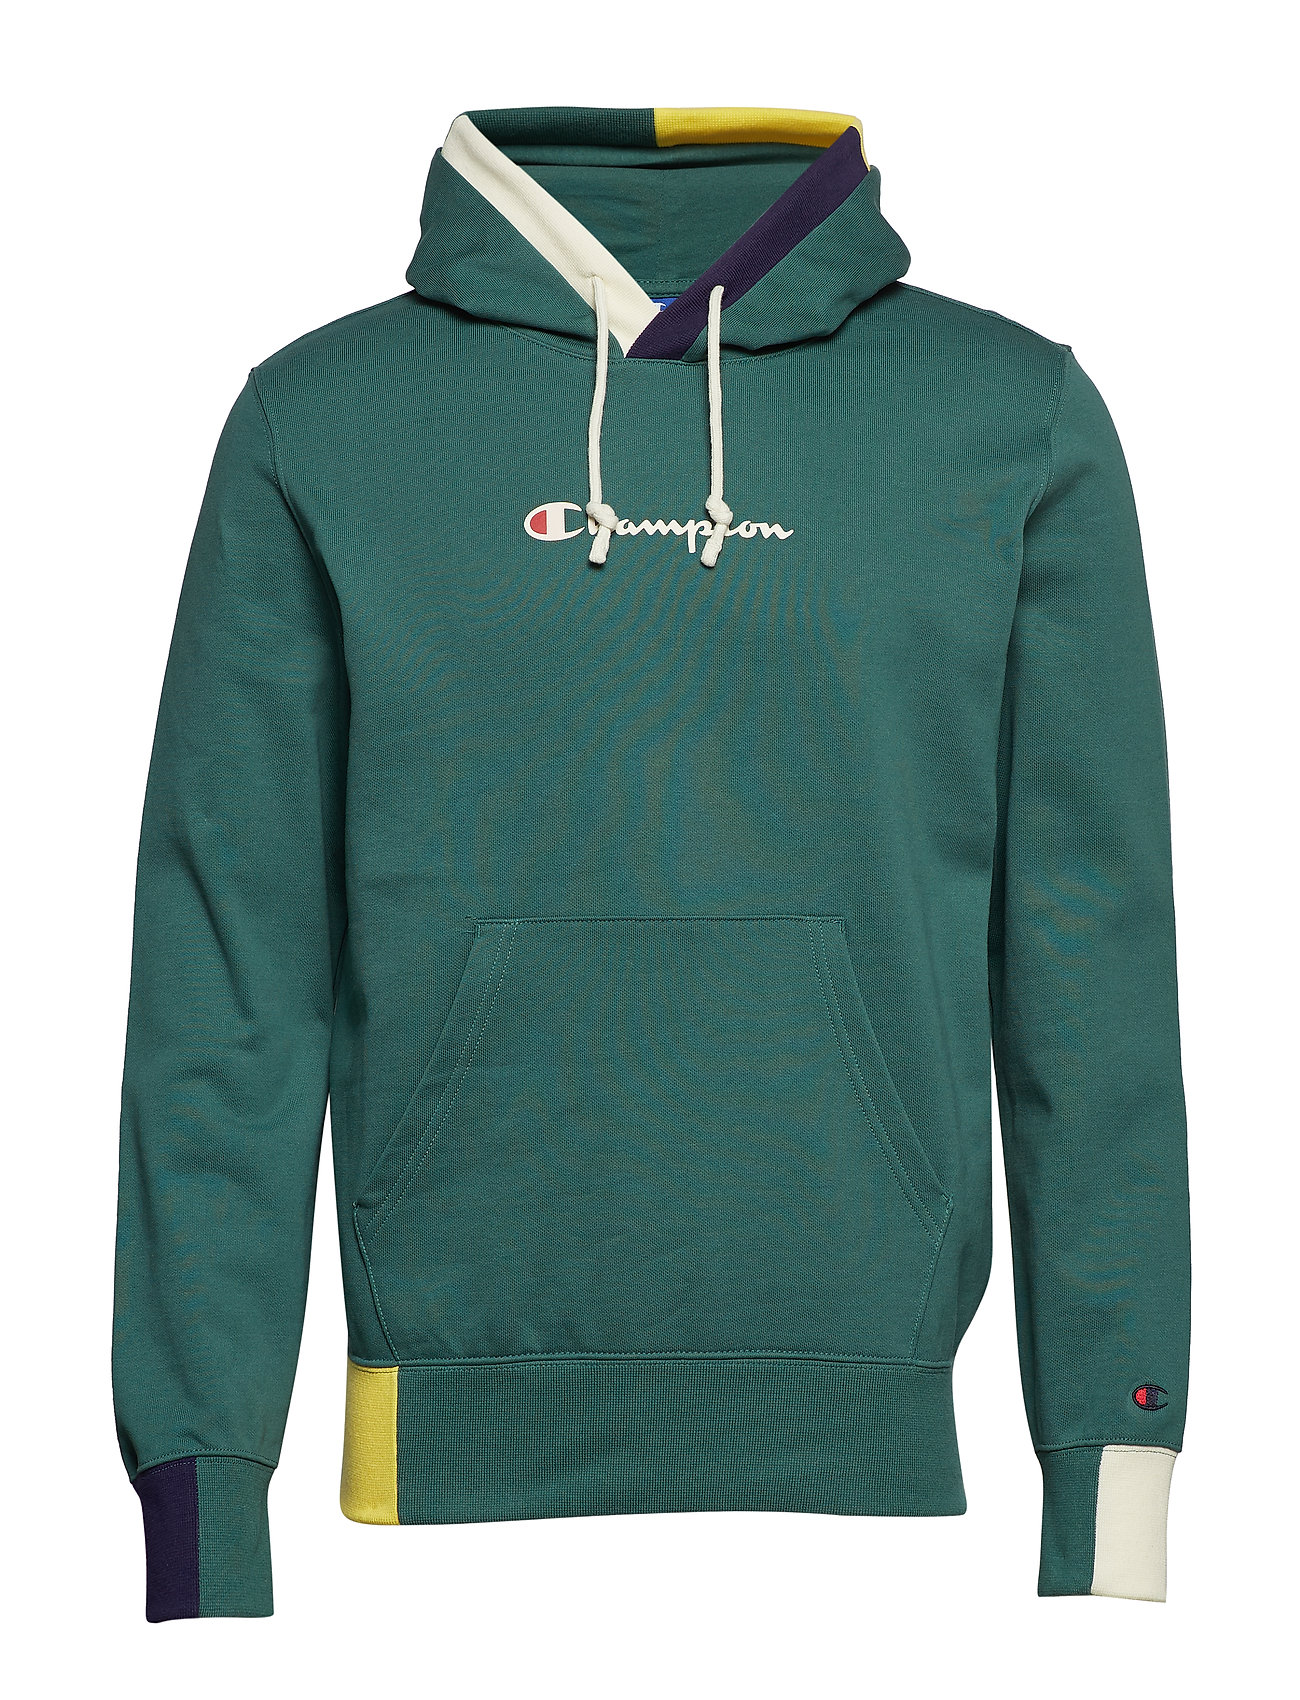 Rochester Hooded Sweatshirtdark Sweatshirtdark Rochester Rochester GreenChampion Sweatshirtdark GreenChampion Hooded Hooded GreenChampion QrshxtdC